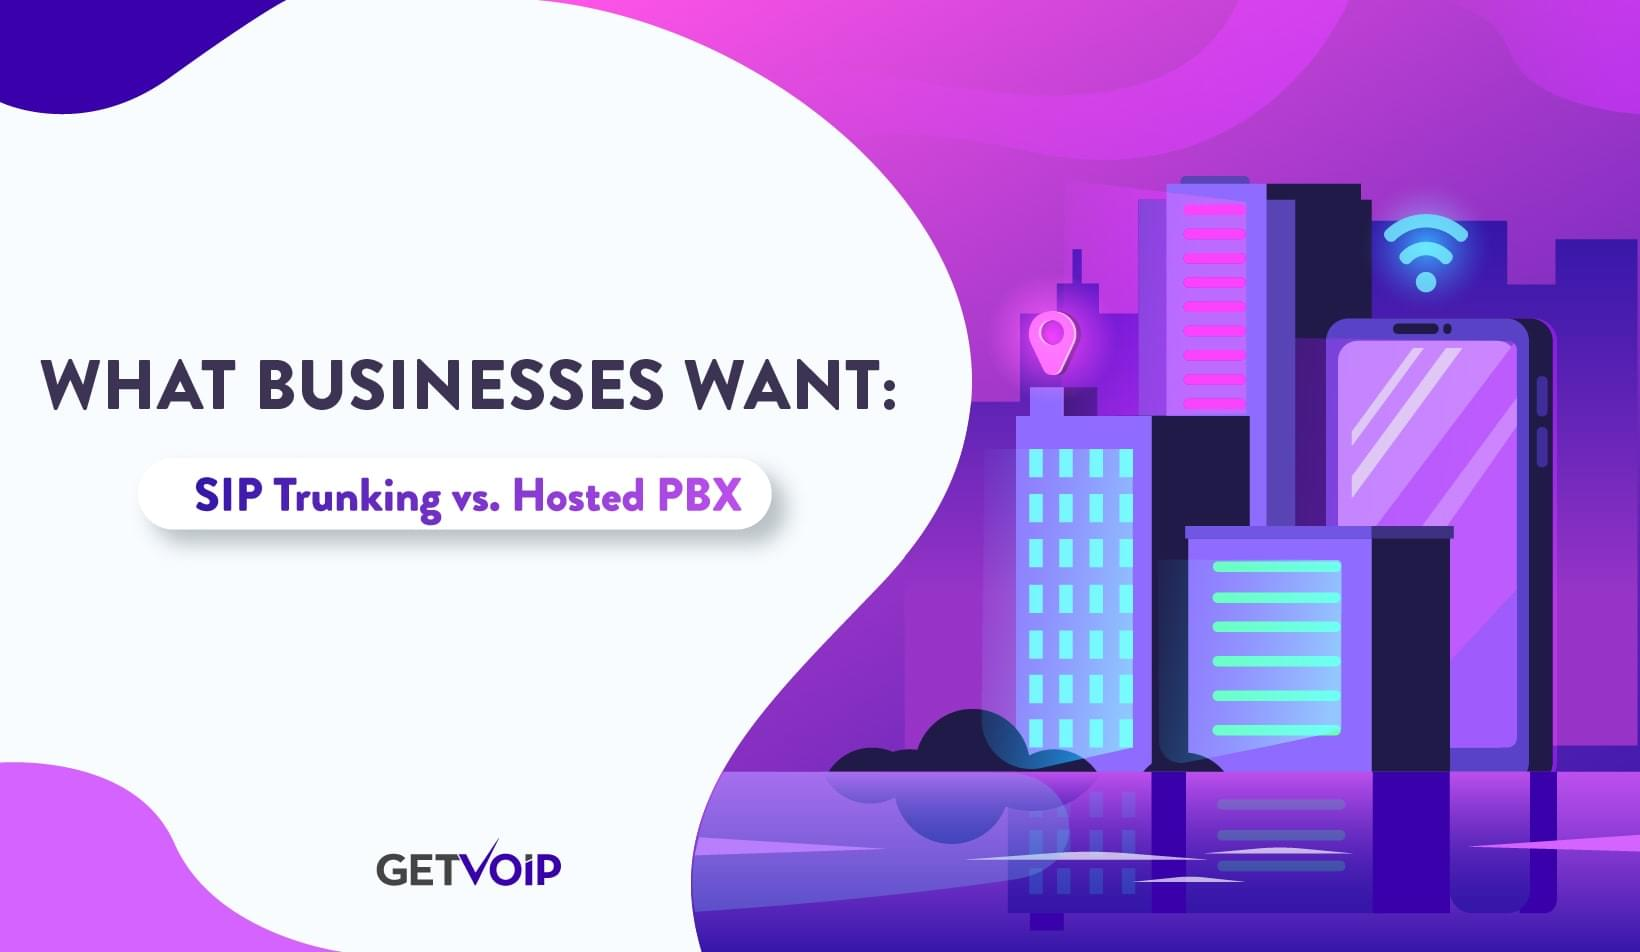 What Businesses Want: SIP Trunking vs. Hosted PBX